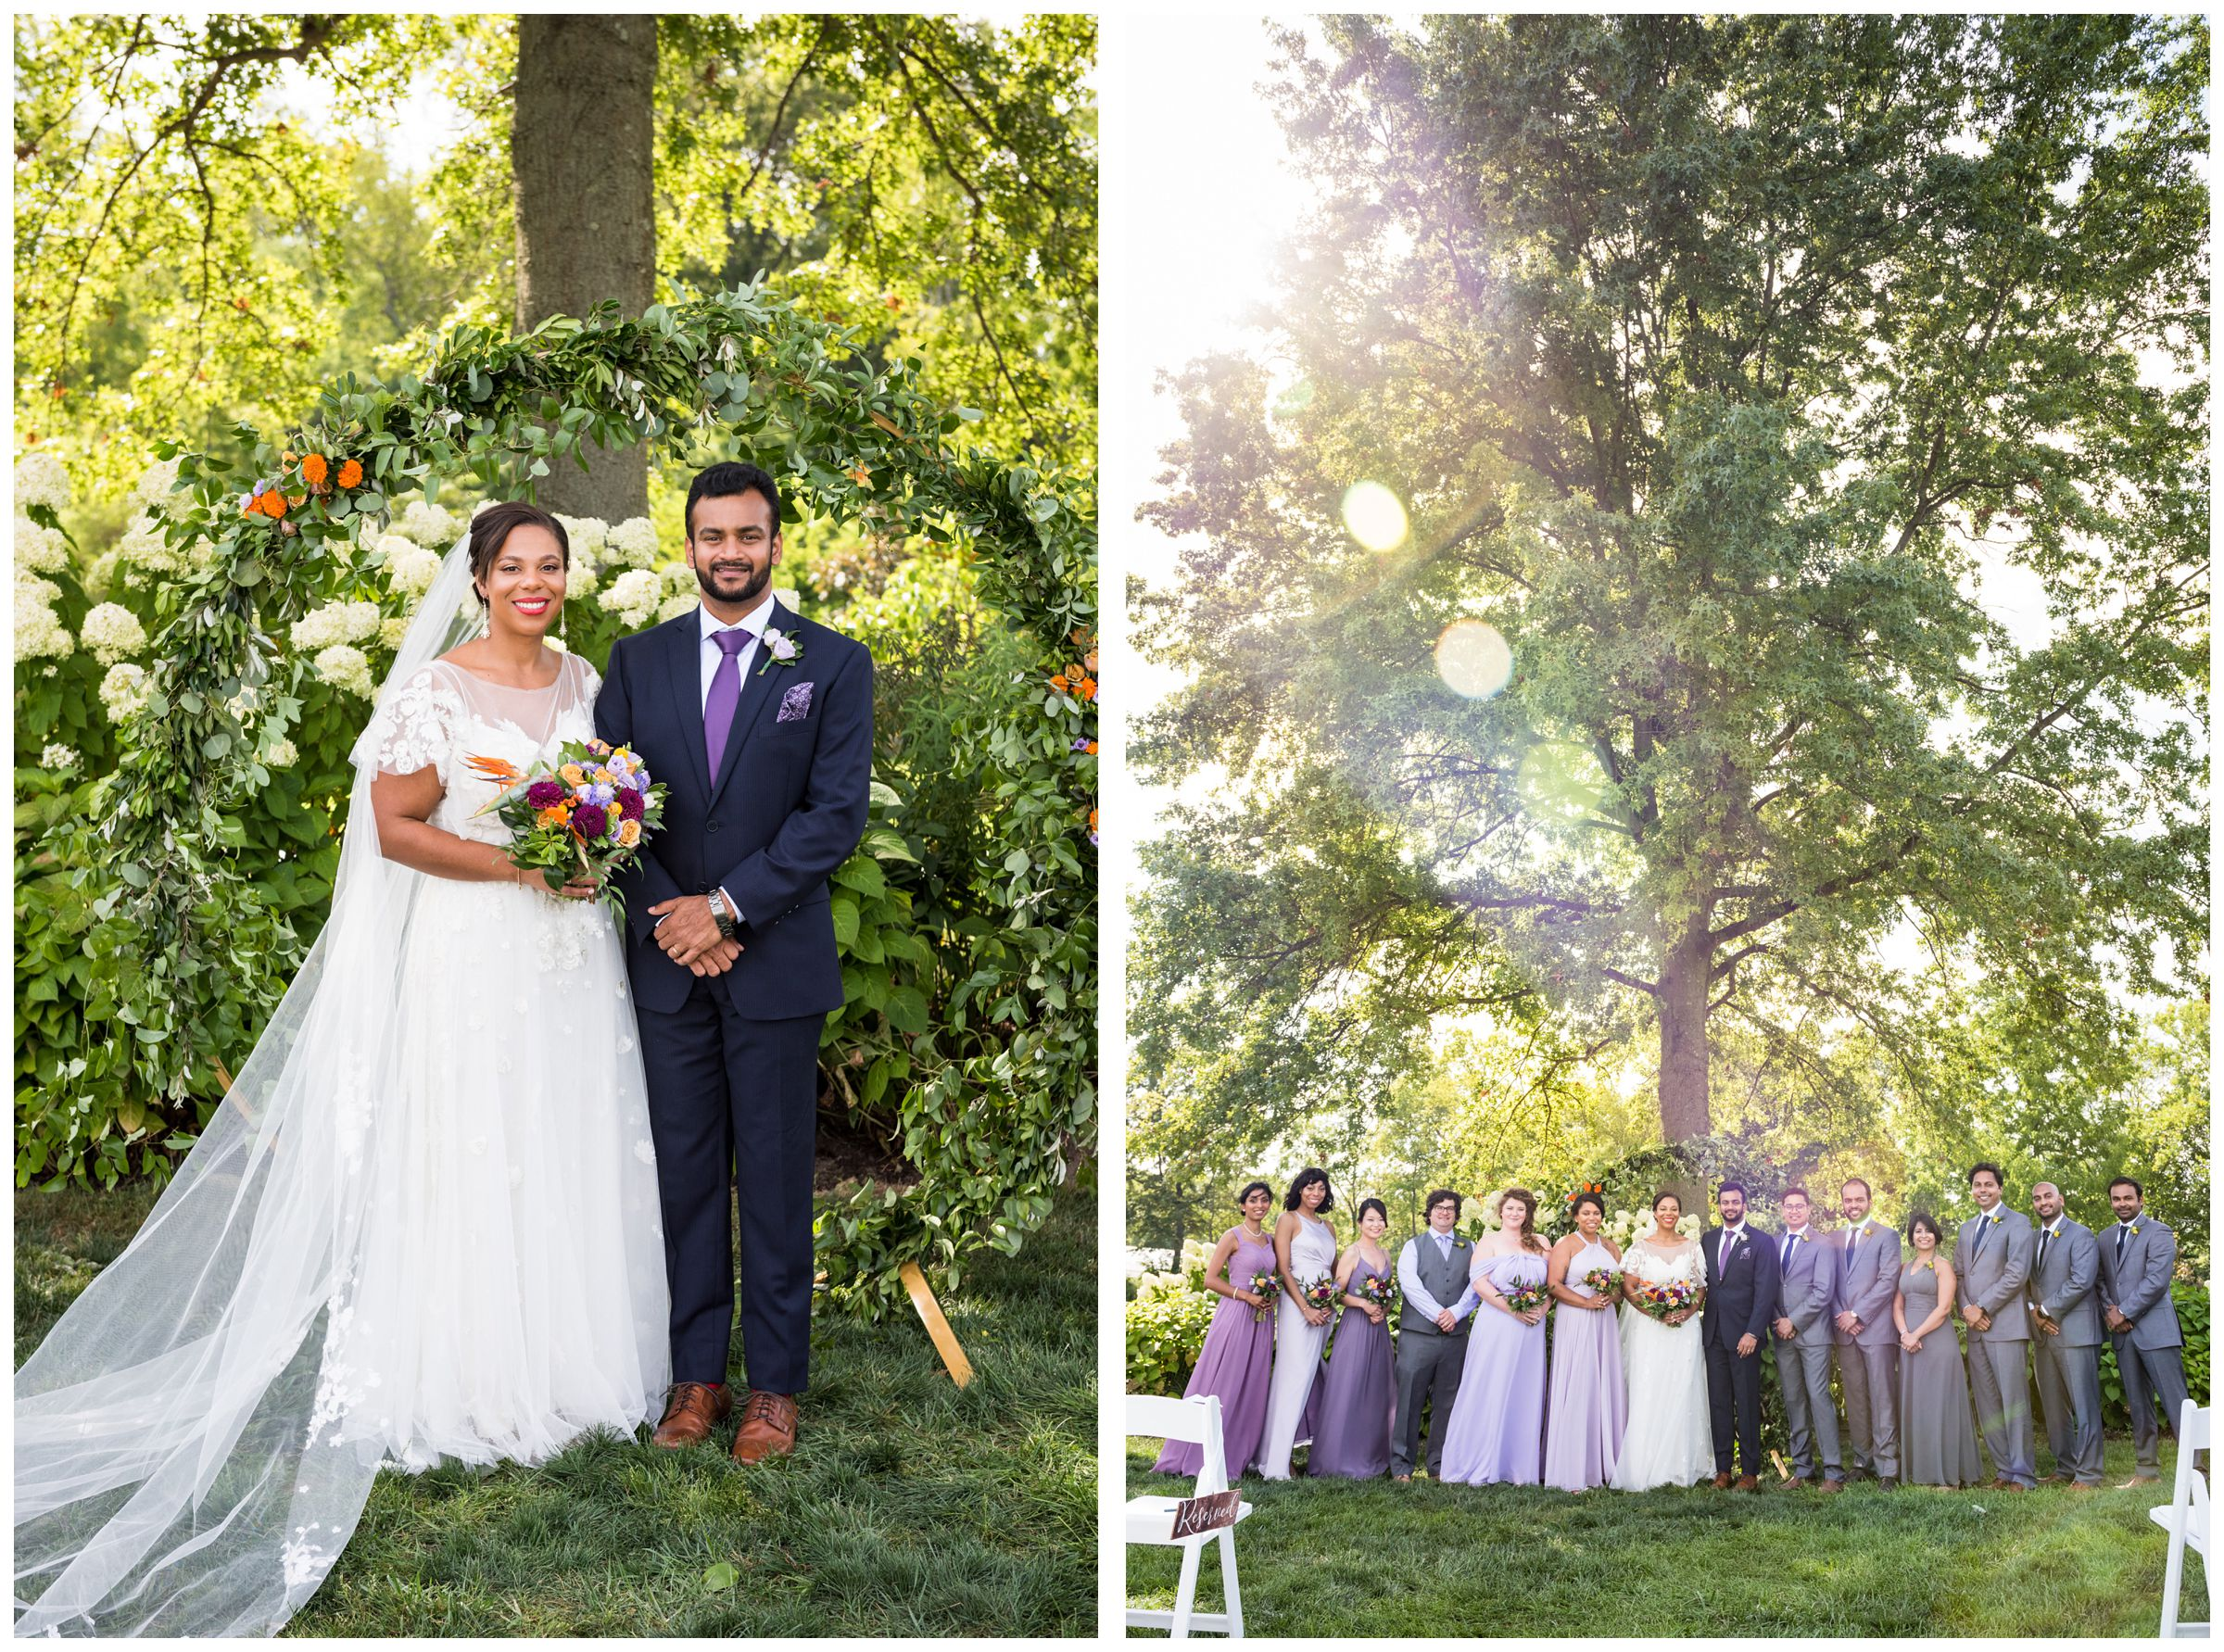 bride and groom with diverse wedding party with lilac purple, blue and gold color scheme